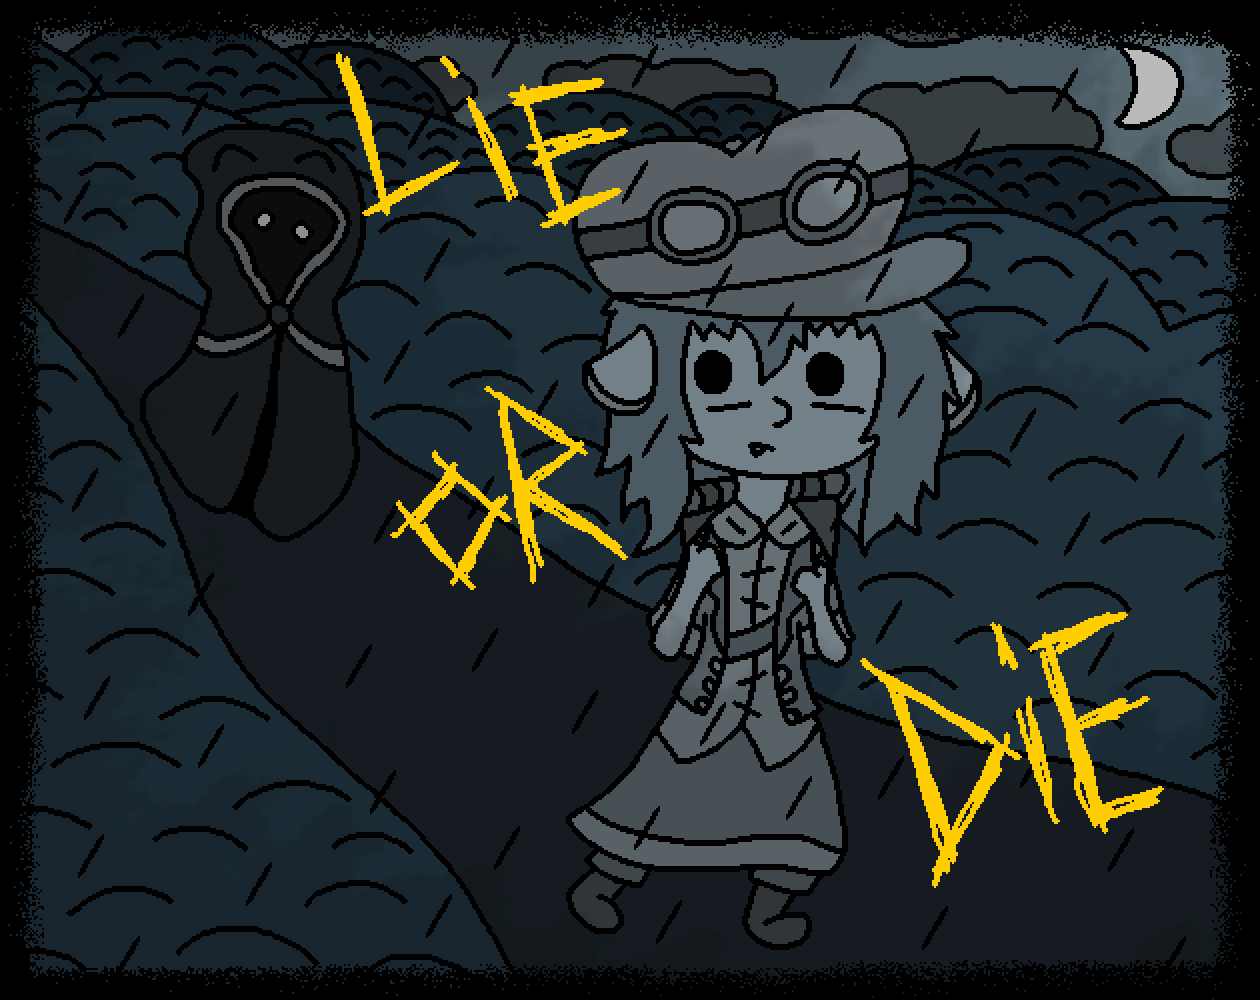 LiE oR DiE